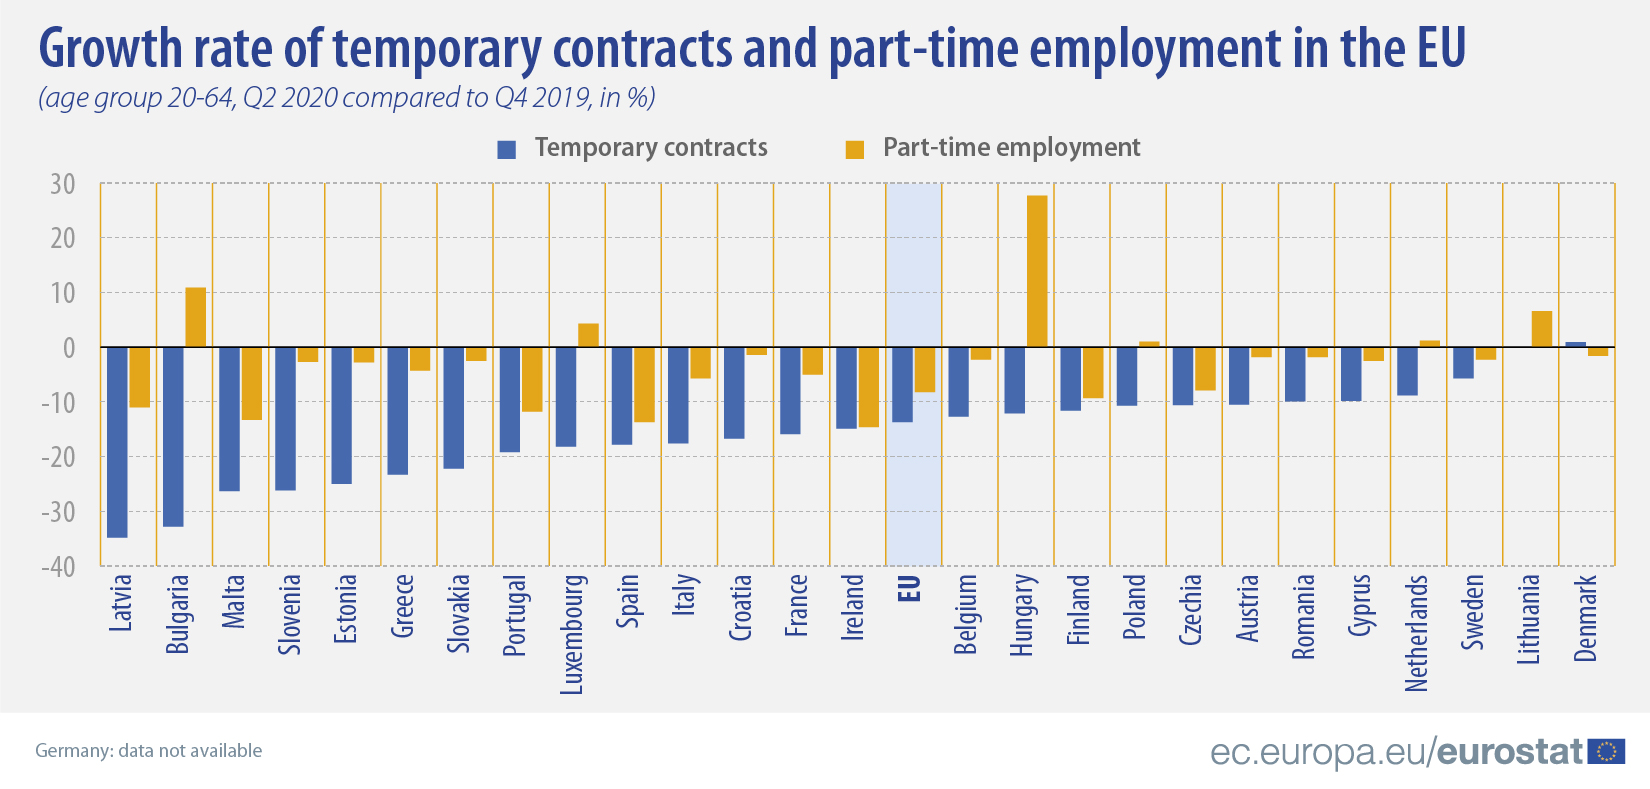 Growth rate of temporary contracts and part-time employment in the EU